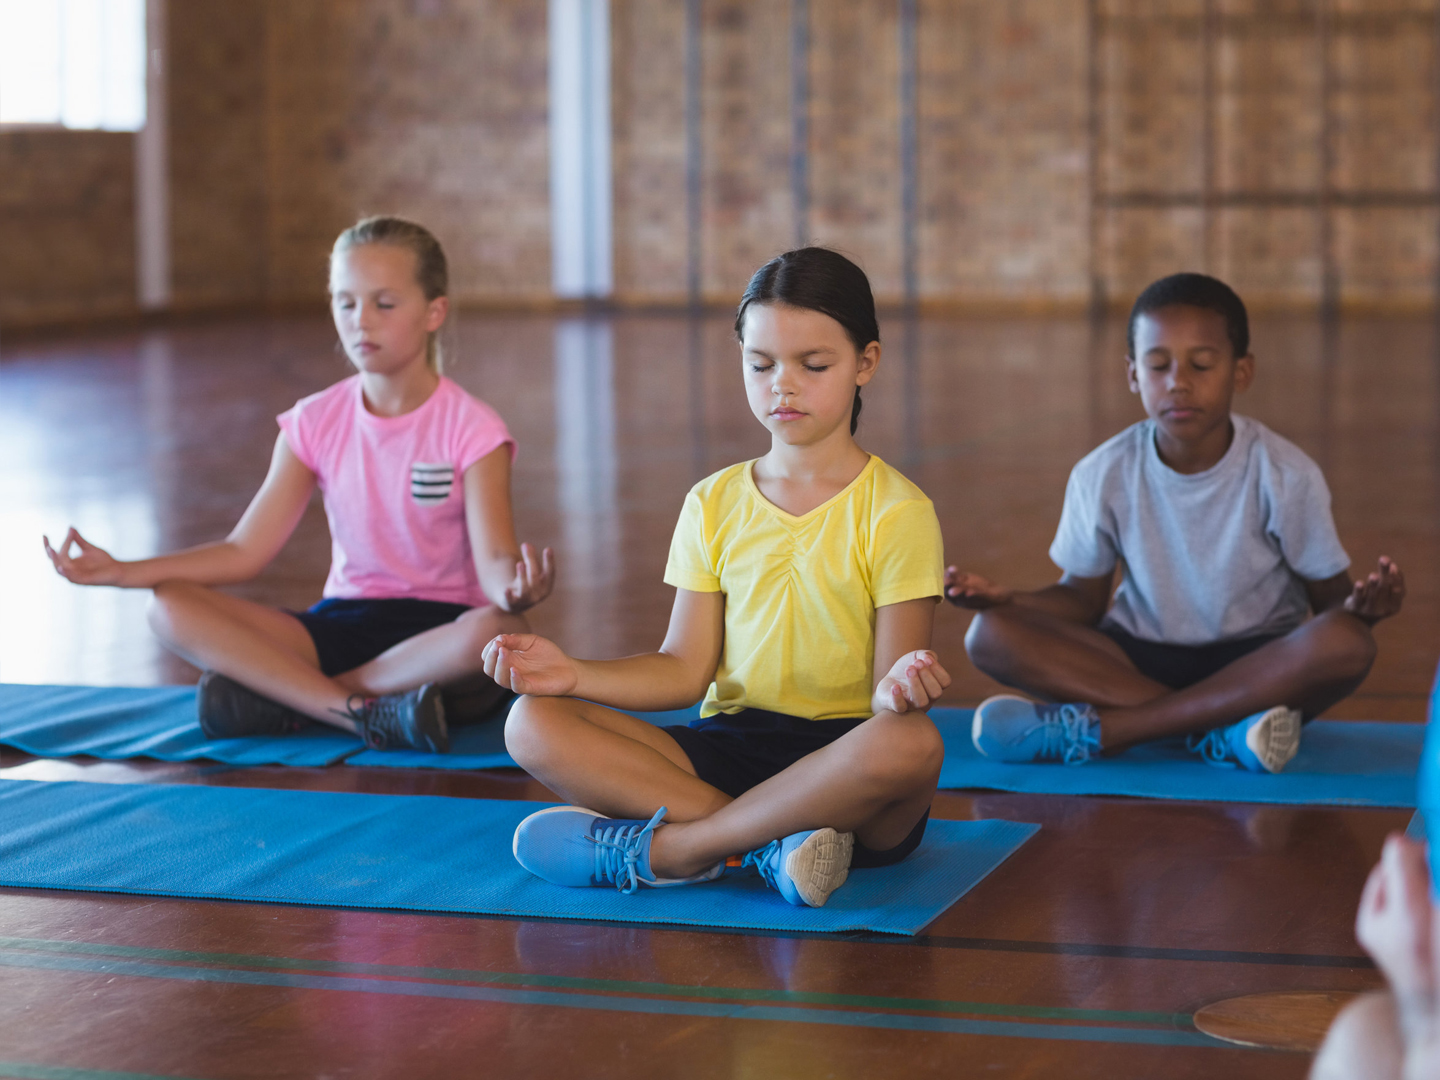 Yoga Poses for Students to reduce Exam Stress